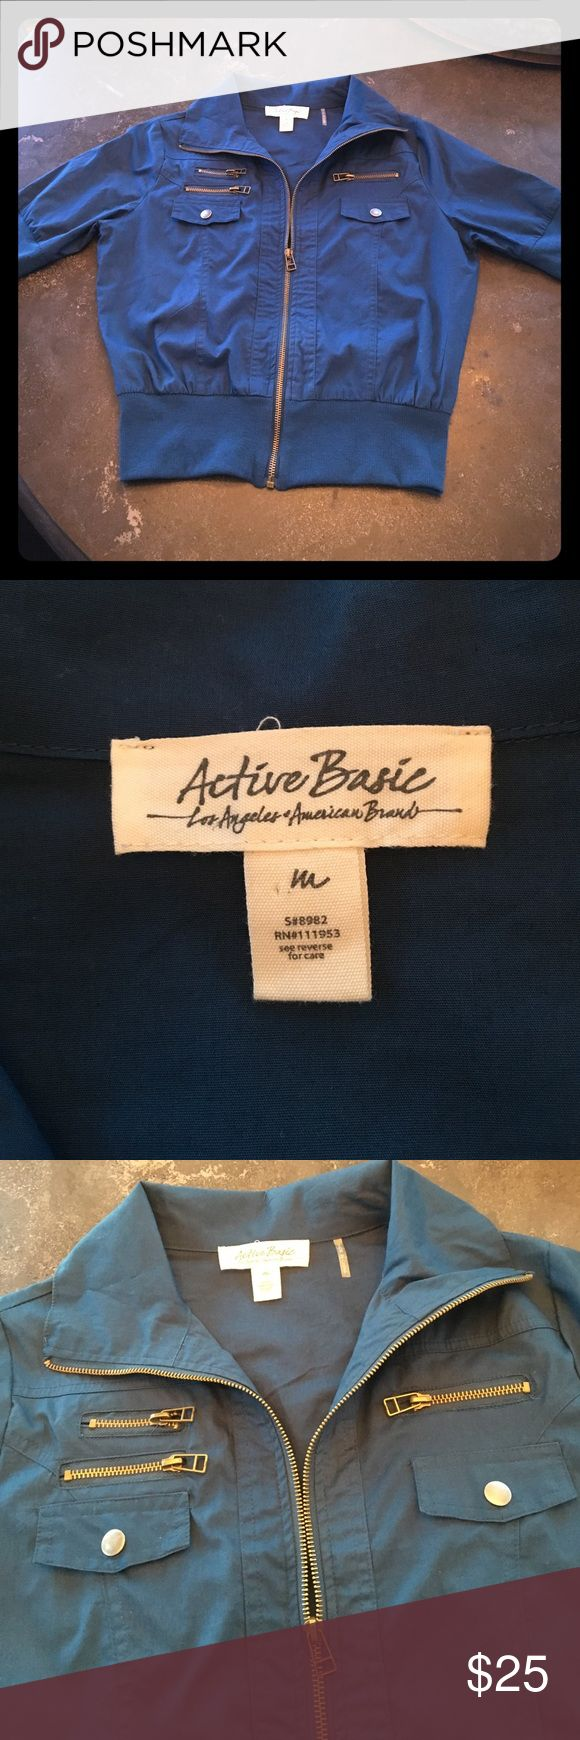 Gorgeous Steel Blue zip up jacket size M Light zip up jacket from Active Basic LA American brand. 3 zip pockets in front and tapered at the waist. Very very cute;) Active Basic Jackets & Coats